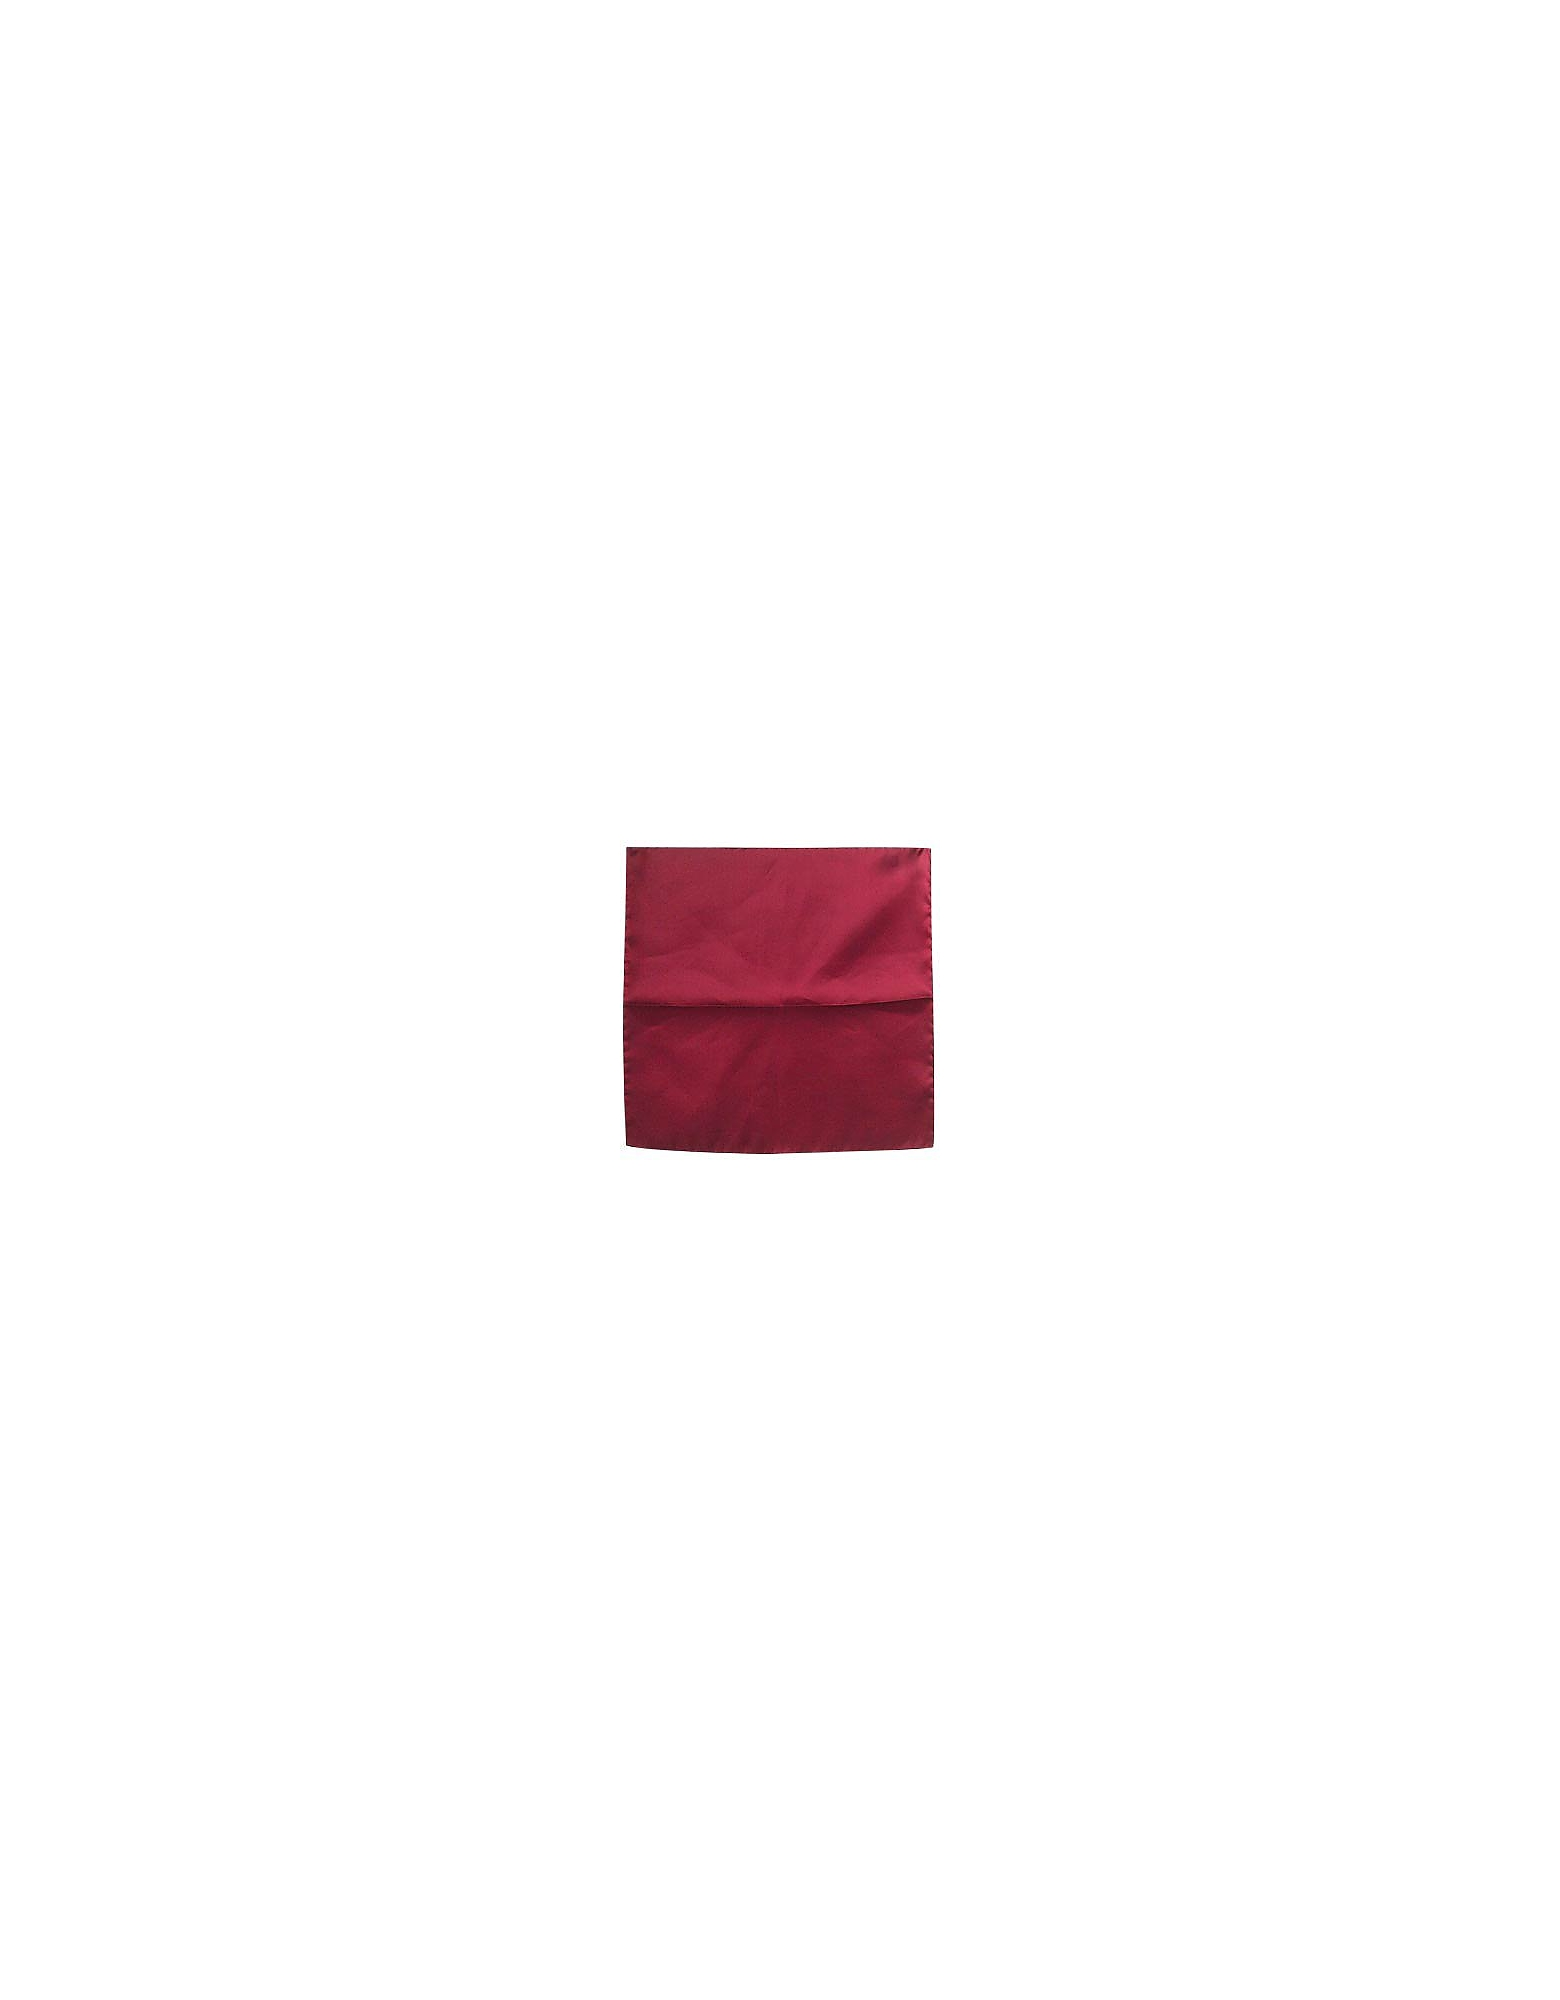 Image of Forzieri Designer Pocket Squares, Cranberry Silk Pocket Square